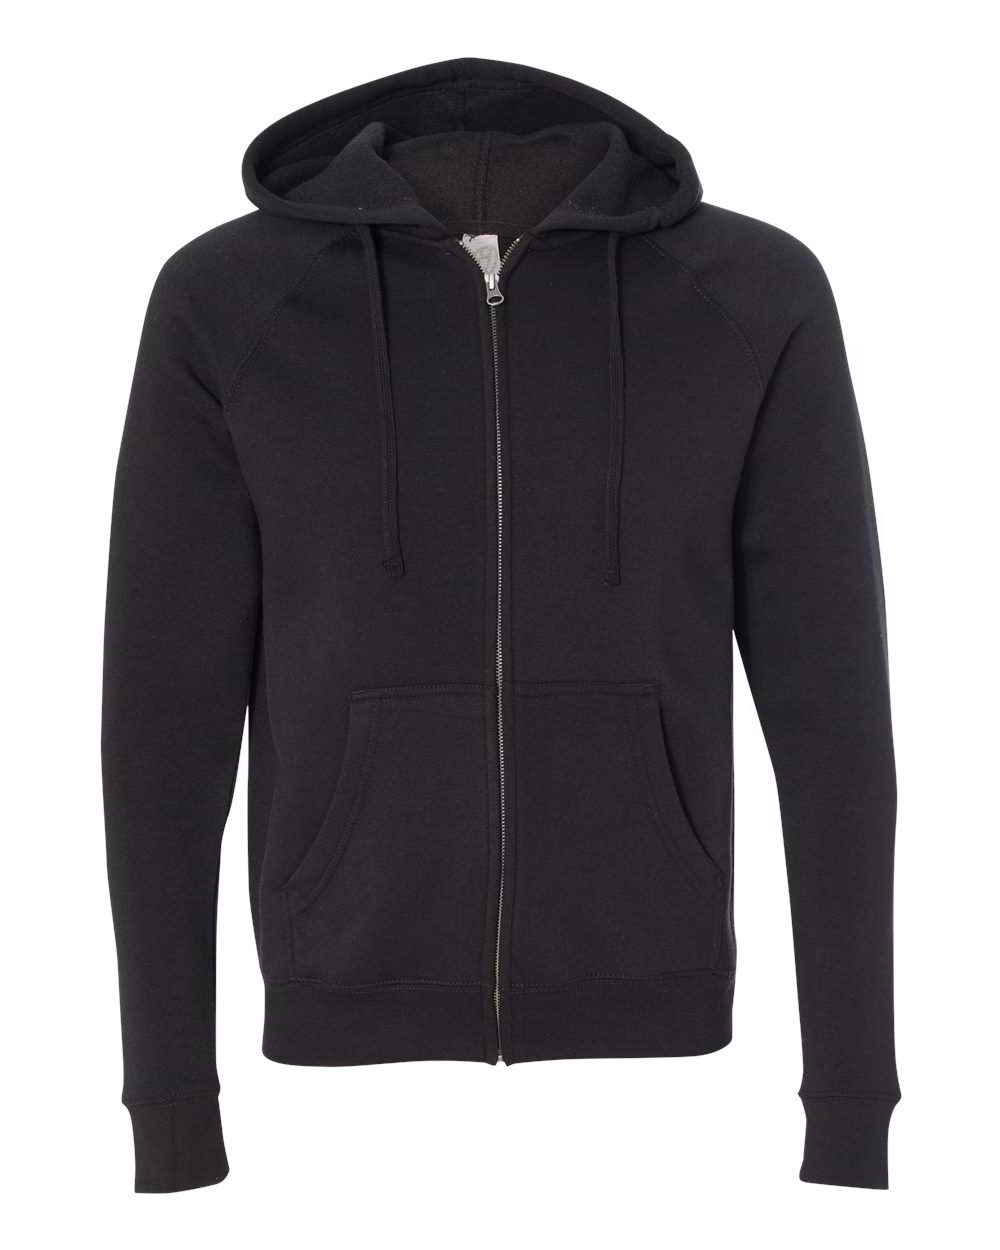 Co Trading Hooded zip Raglan Unisex Full Blend Sweatshirt Special Independent 6Zd5w7wq